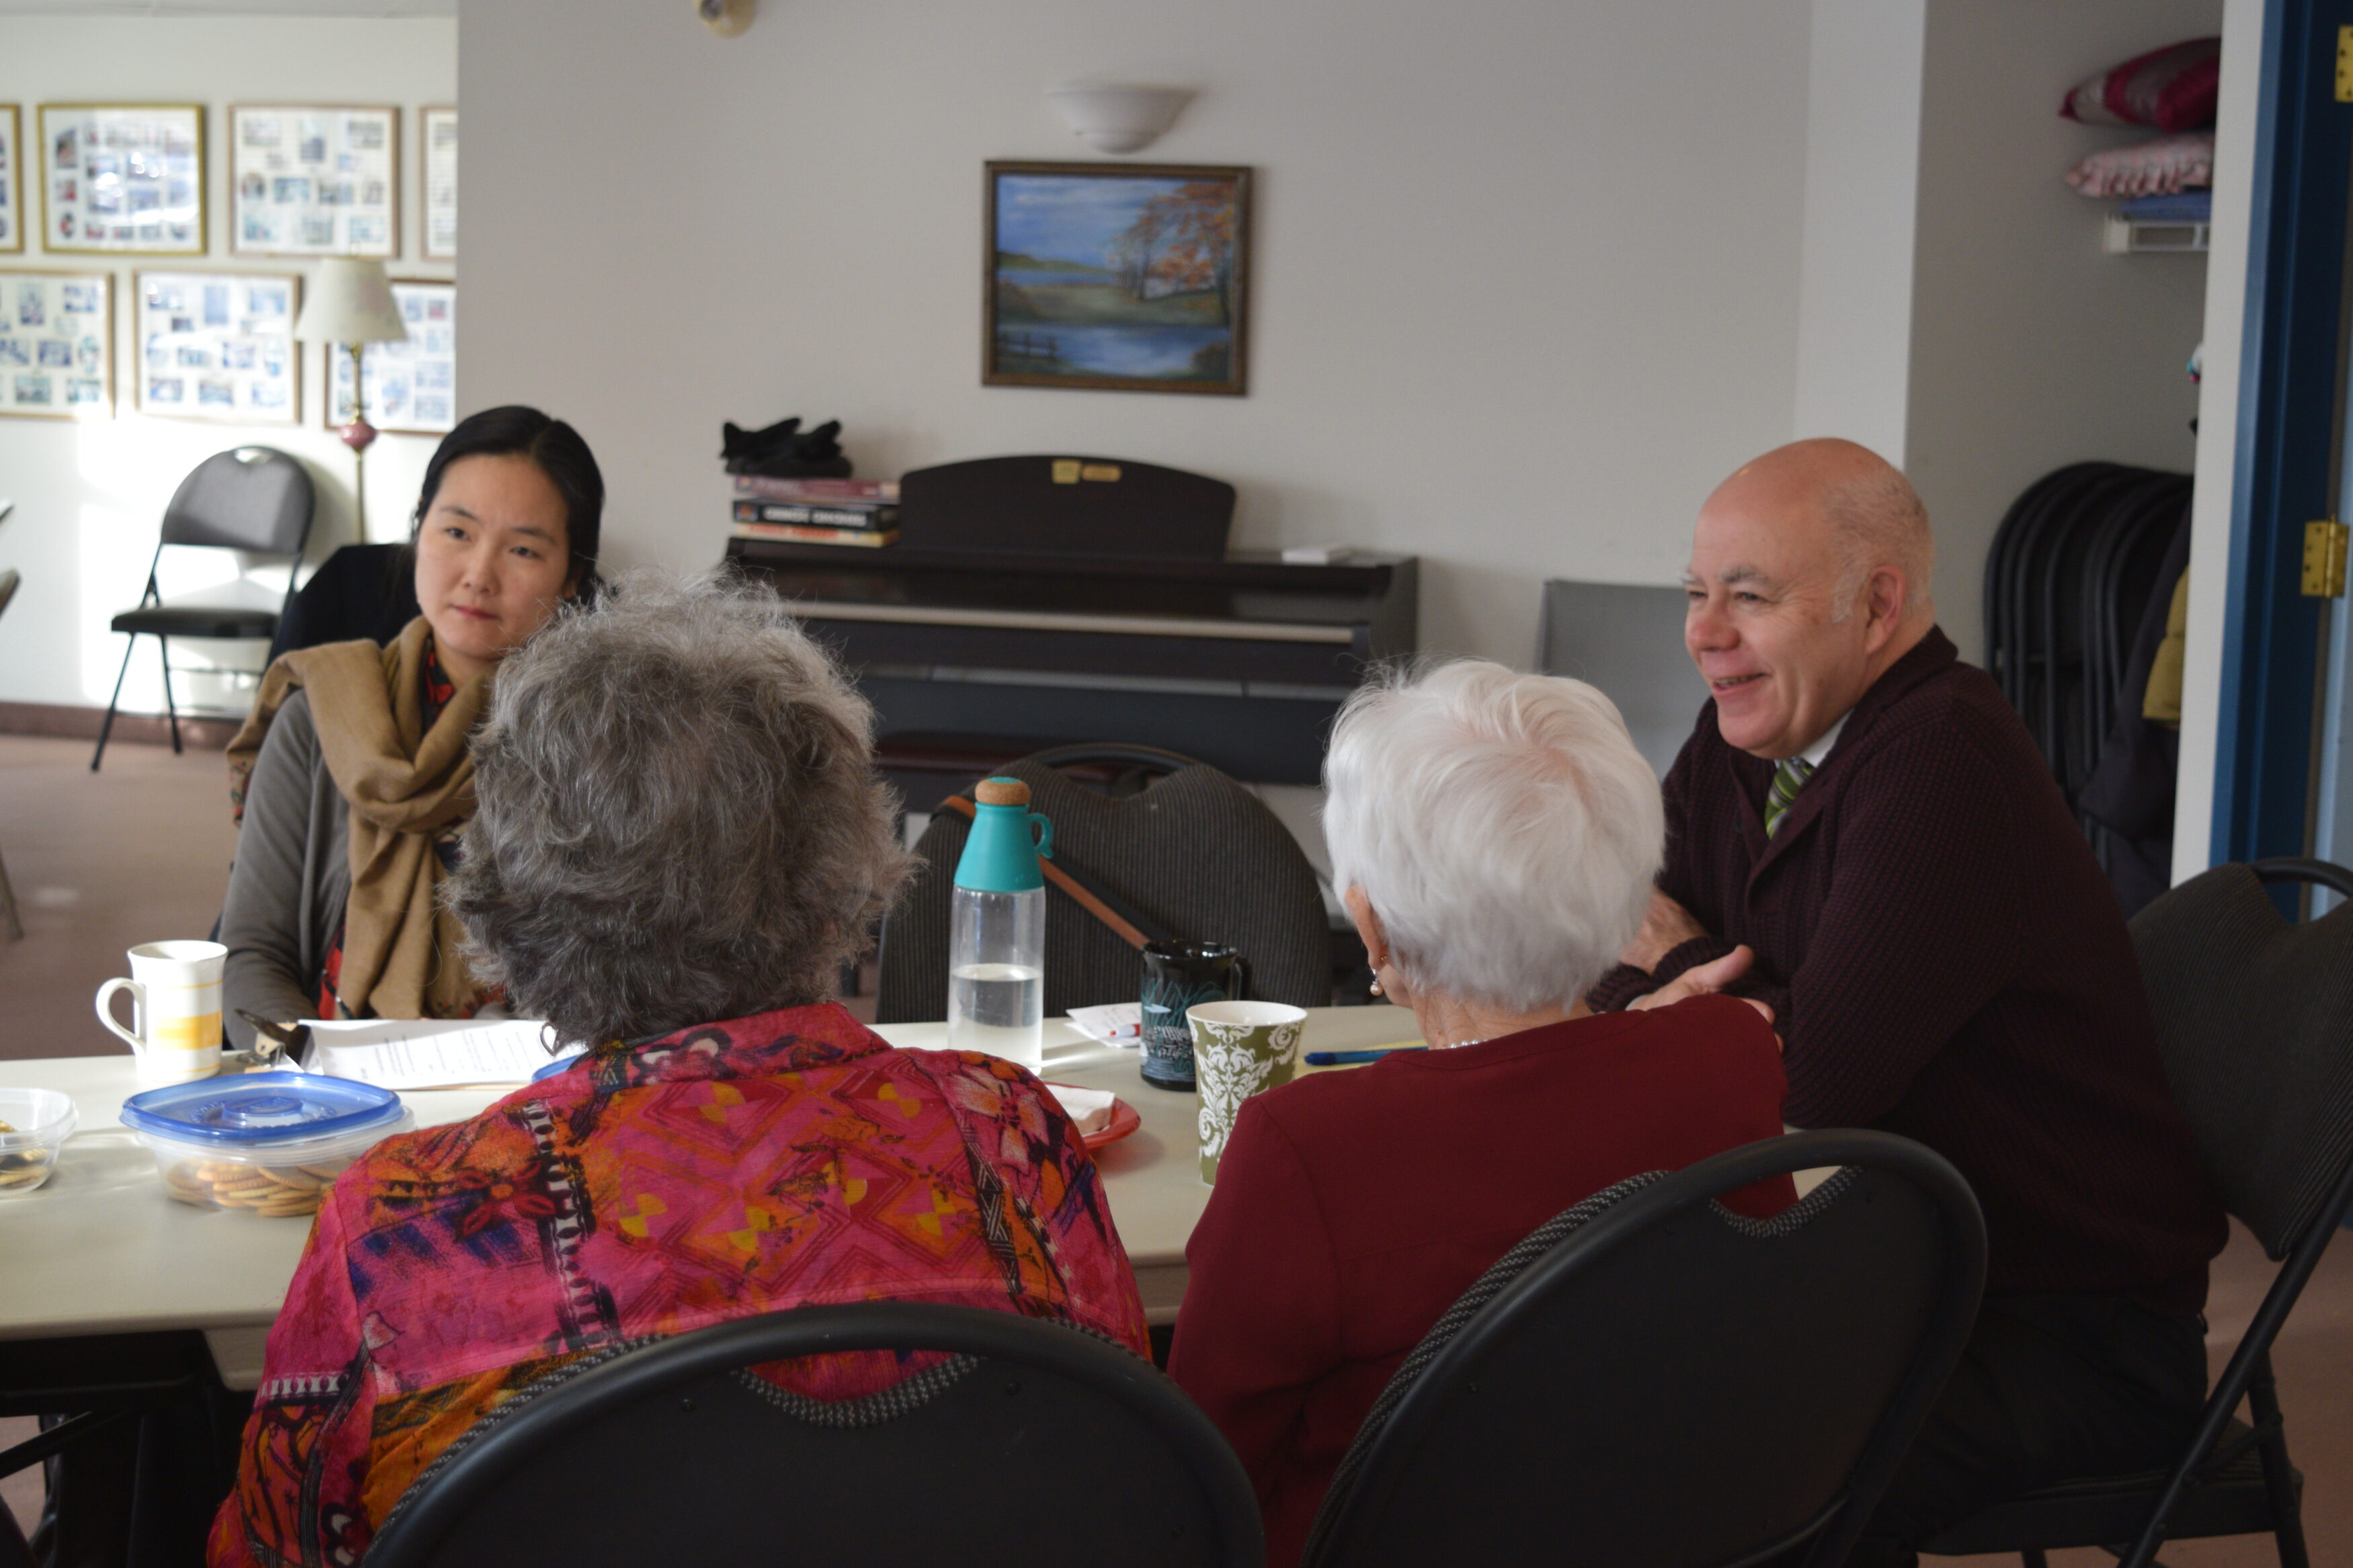 Federal Home Care Dollars Funding Transfer of the Extra Mural Program to Private Management